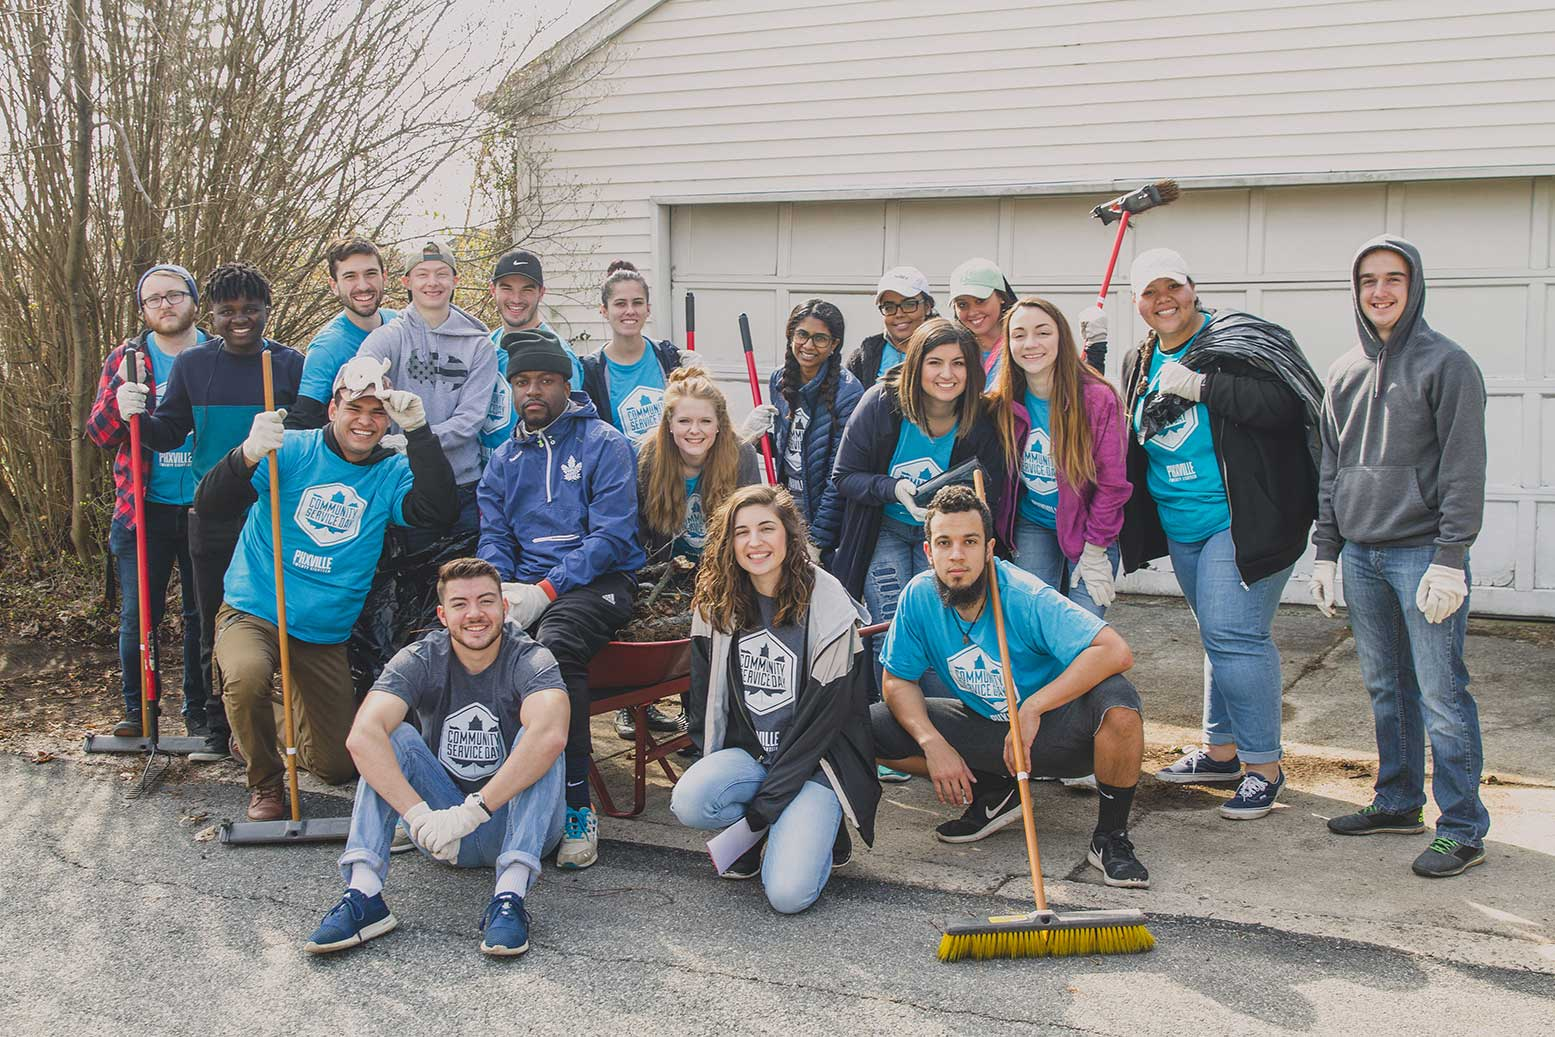 Group Photo of Community Service Day